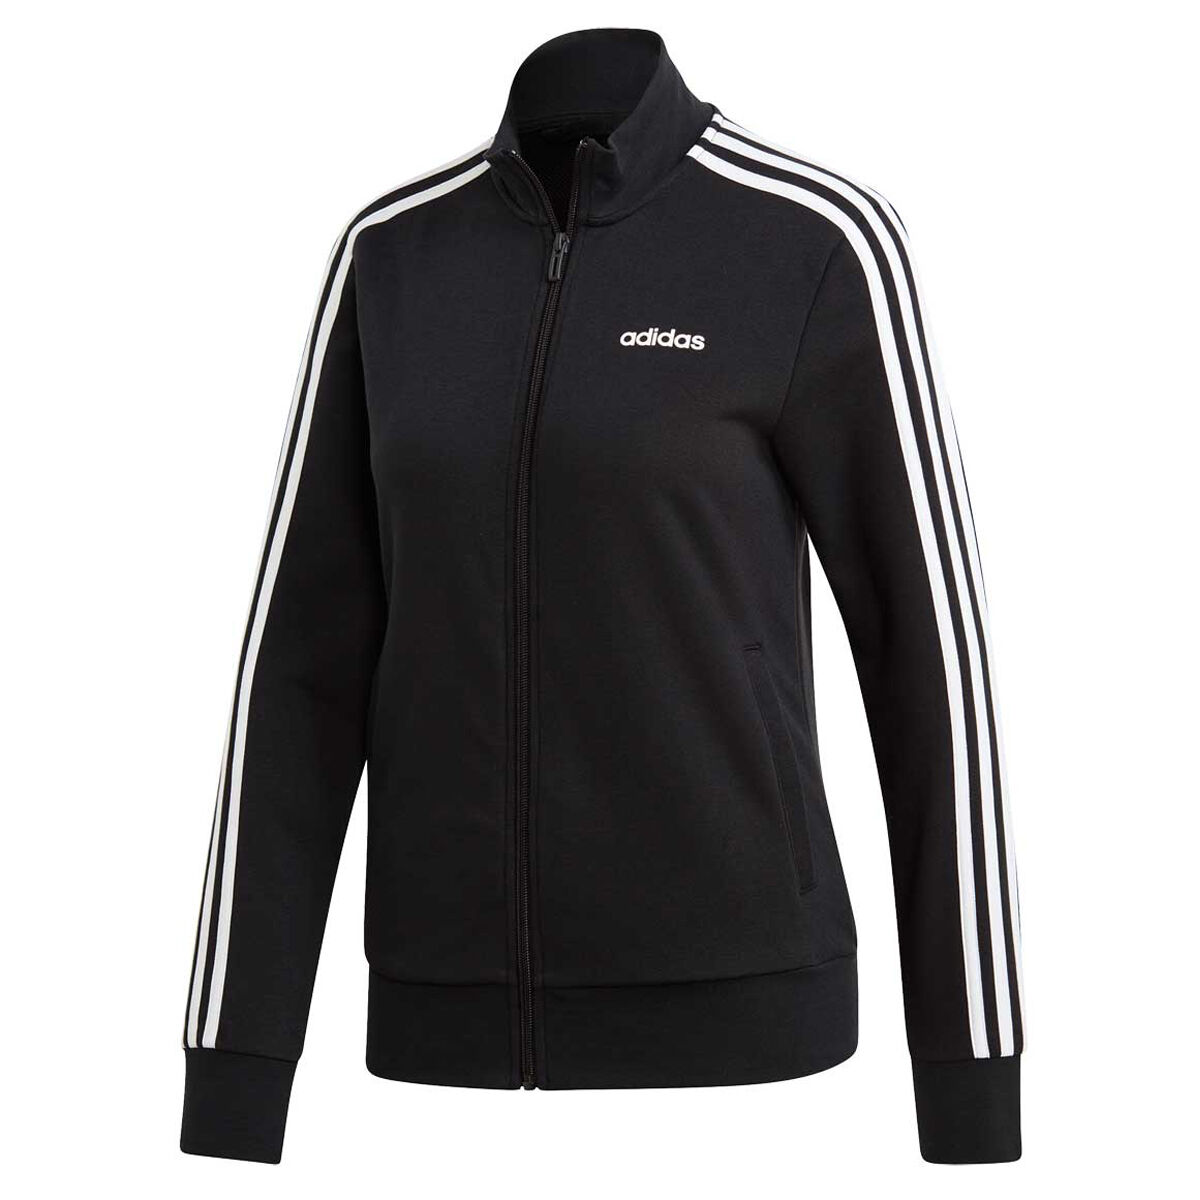 Adidas black & gold 3 stripes track jacket L